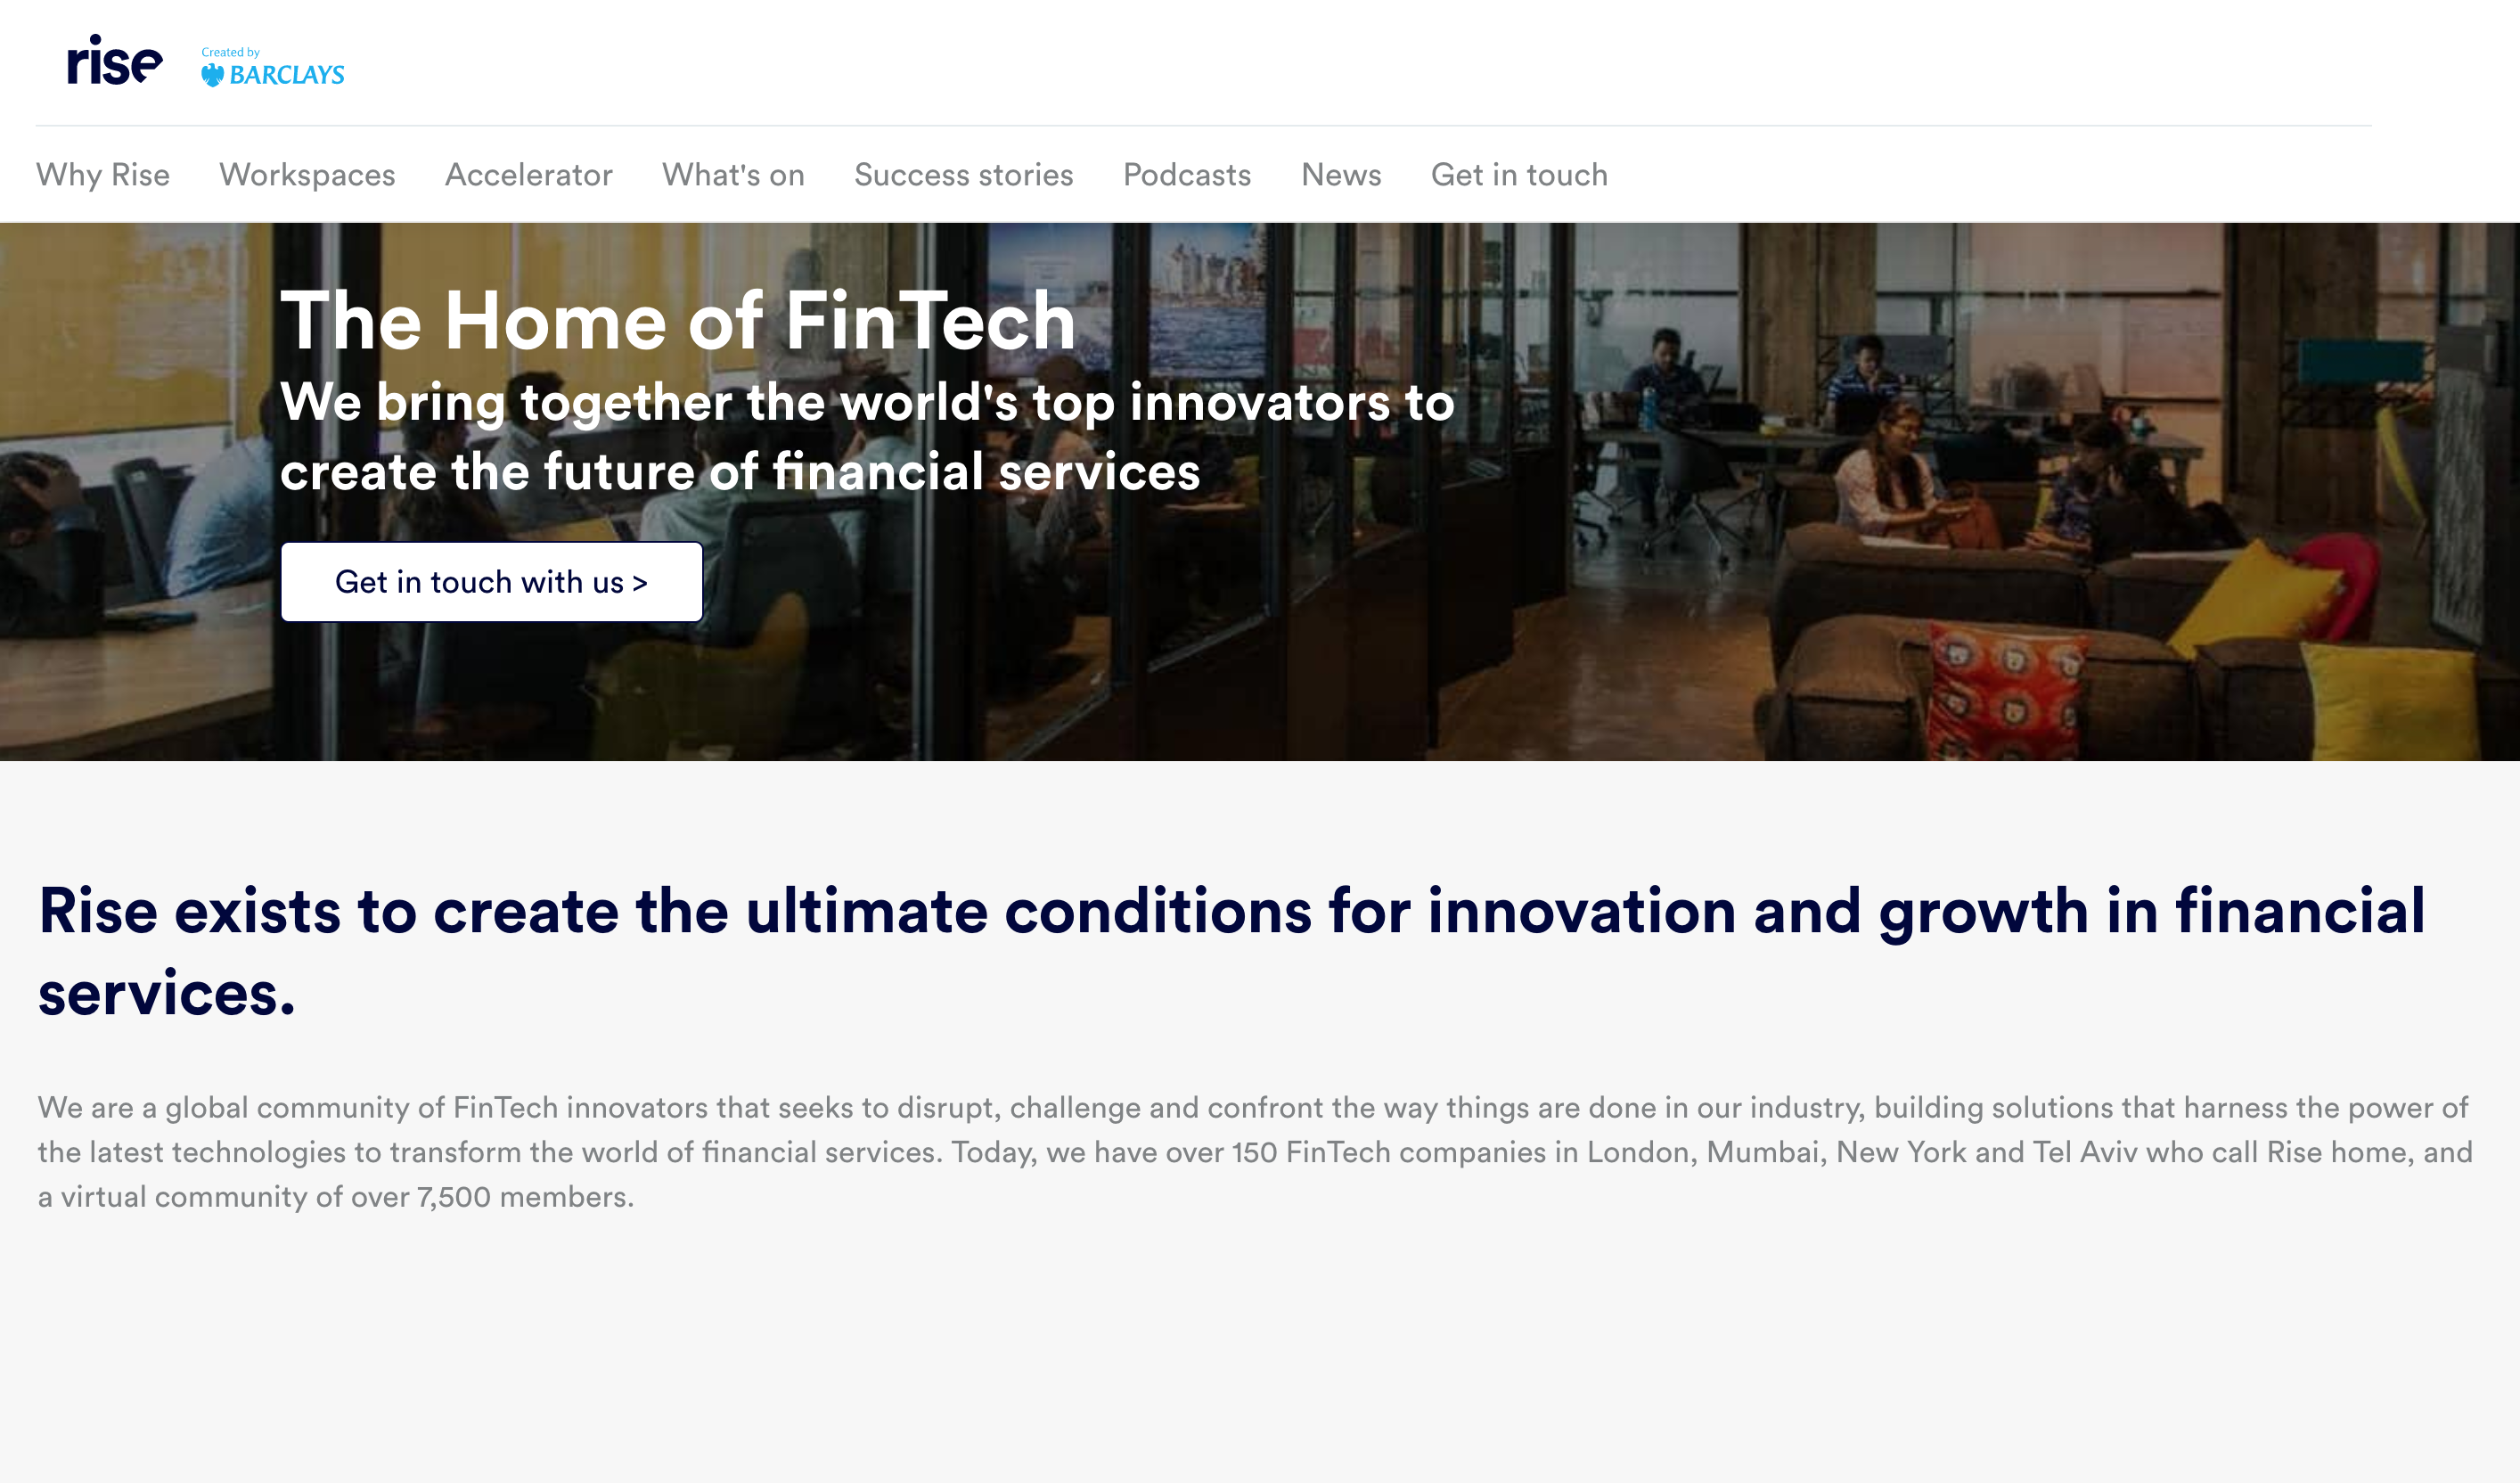 The UK bank's online innovation portal for customers and partners